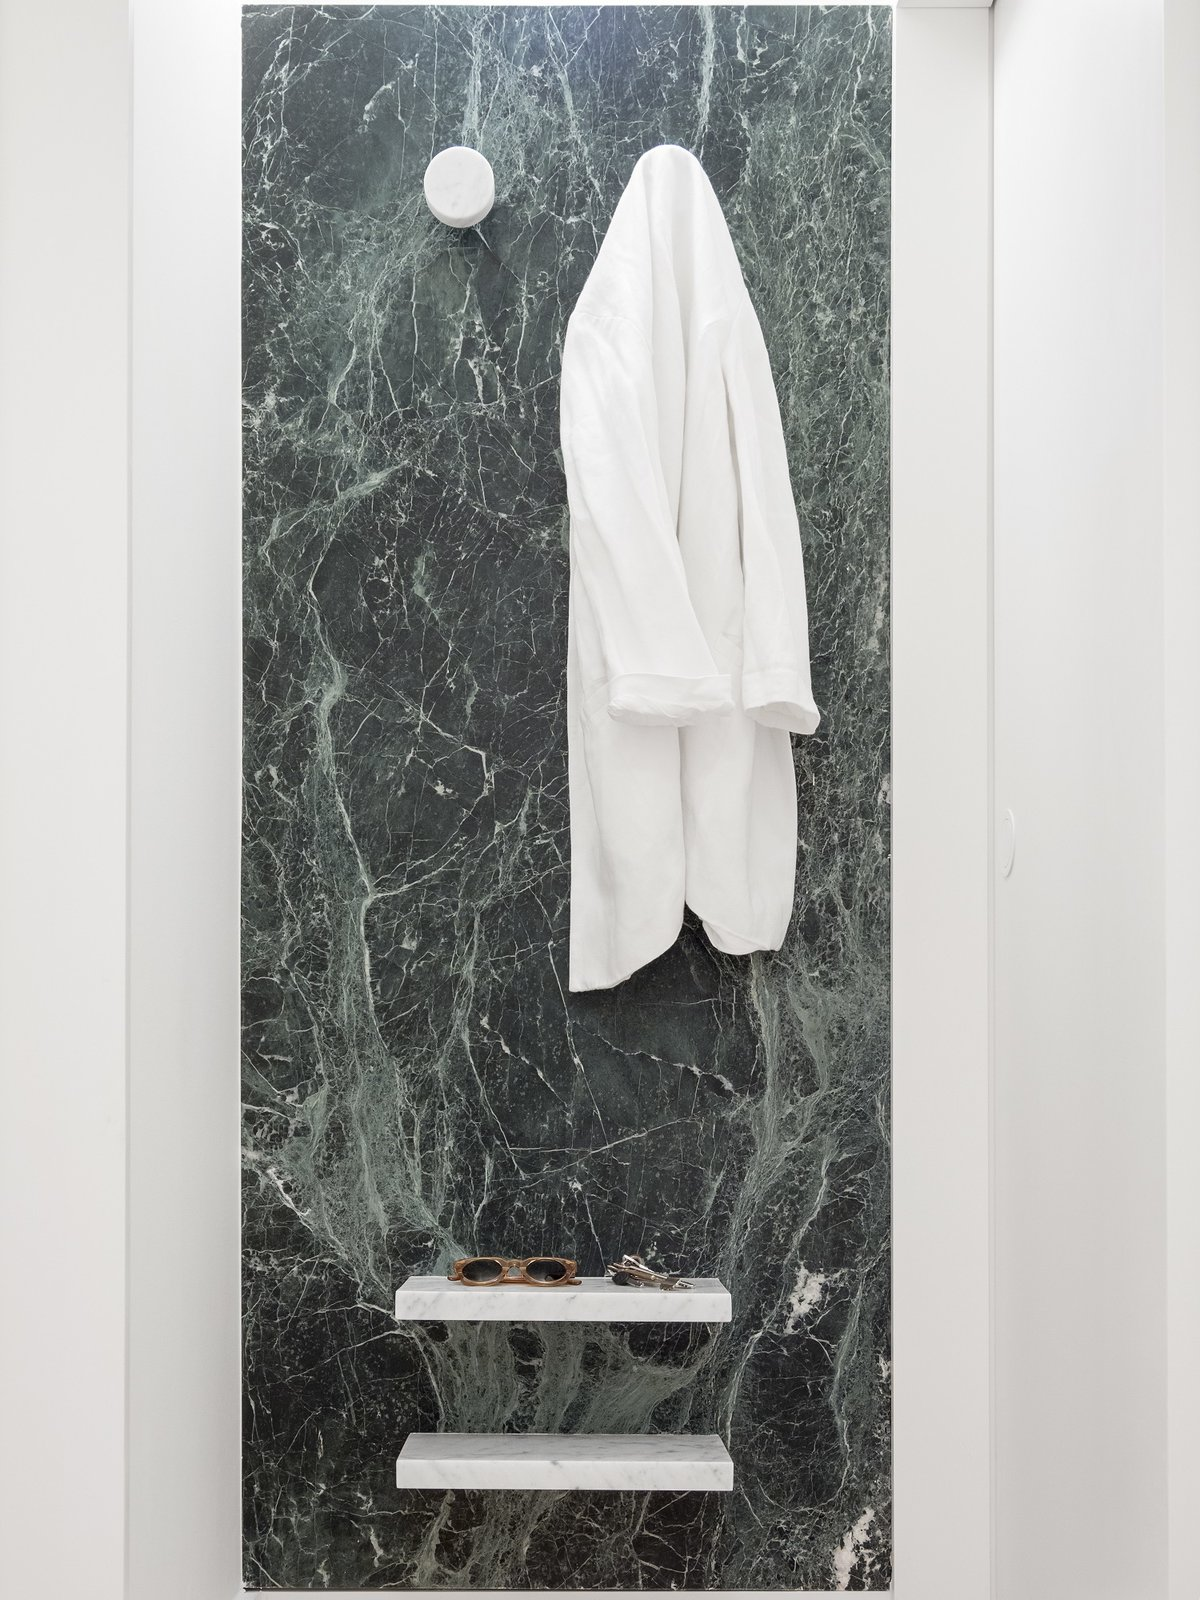 Bath Room and Marble Wall  Photo 9 of 16 in A Luminous Renovation in Portugal Creates a Bright and Airy Apartment